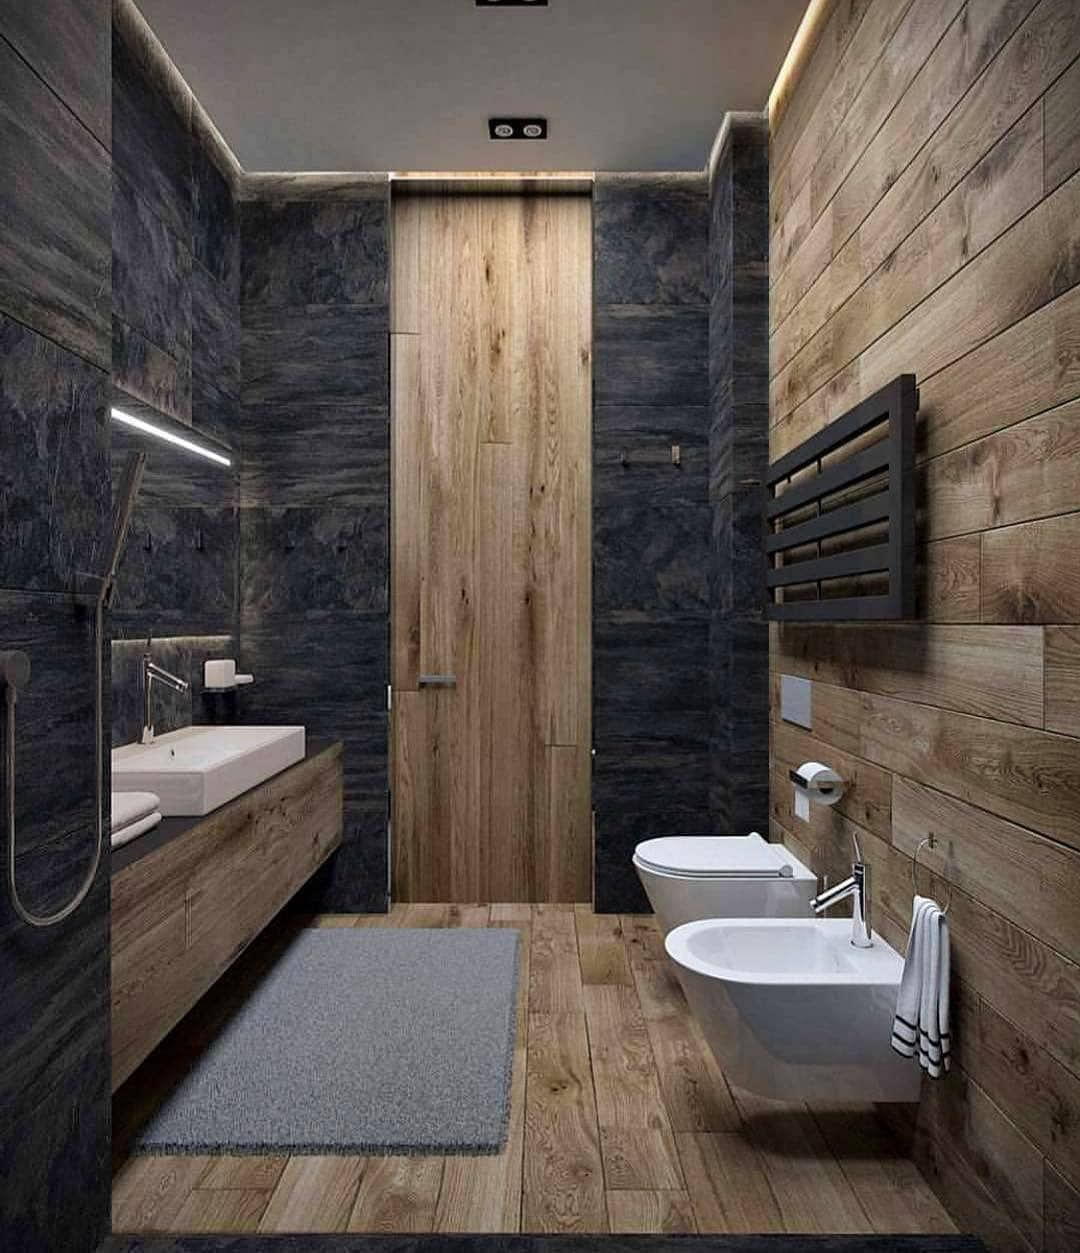 What Do You Think About This Beautiful Bathroom Designed By Svoya Design Follow Luxhousedesign For Bagno Interno Arredamento Bagno Idee Bagno Piccolo